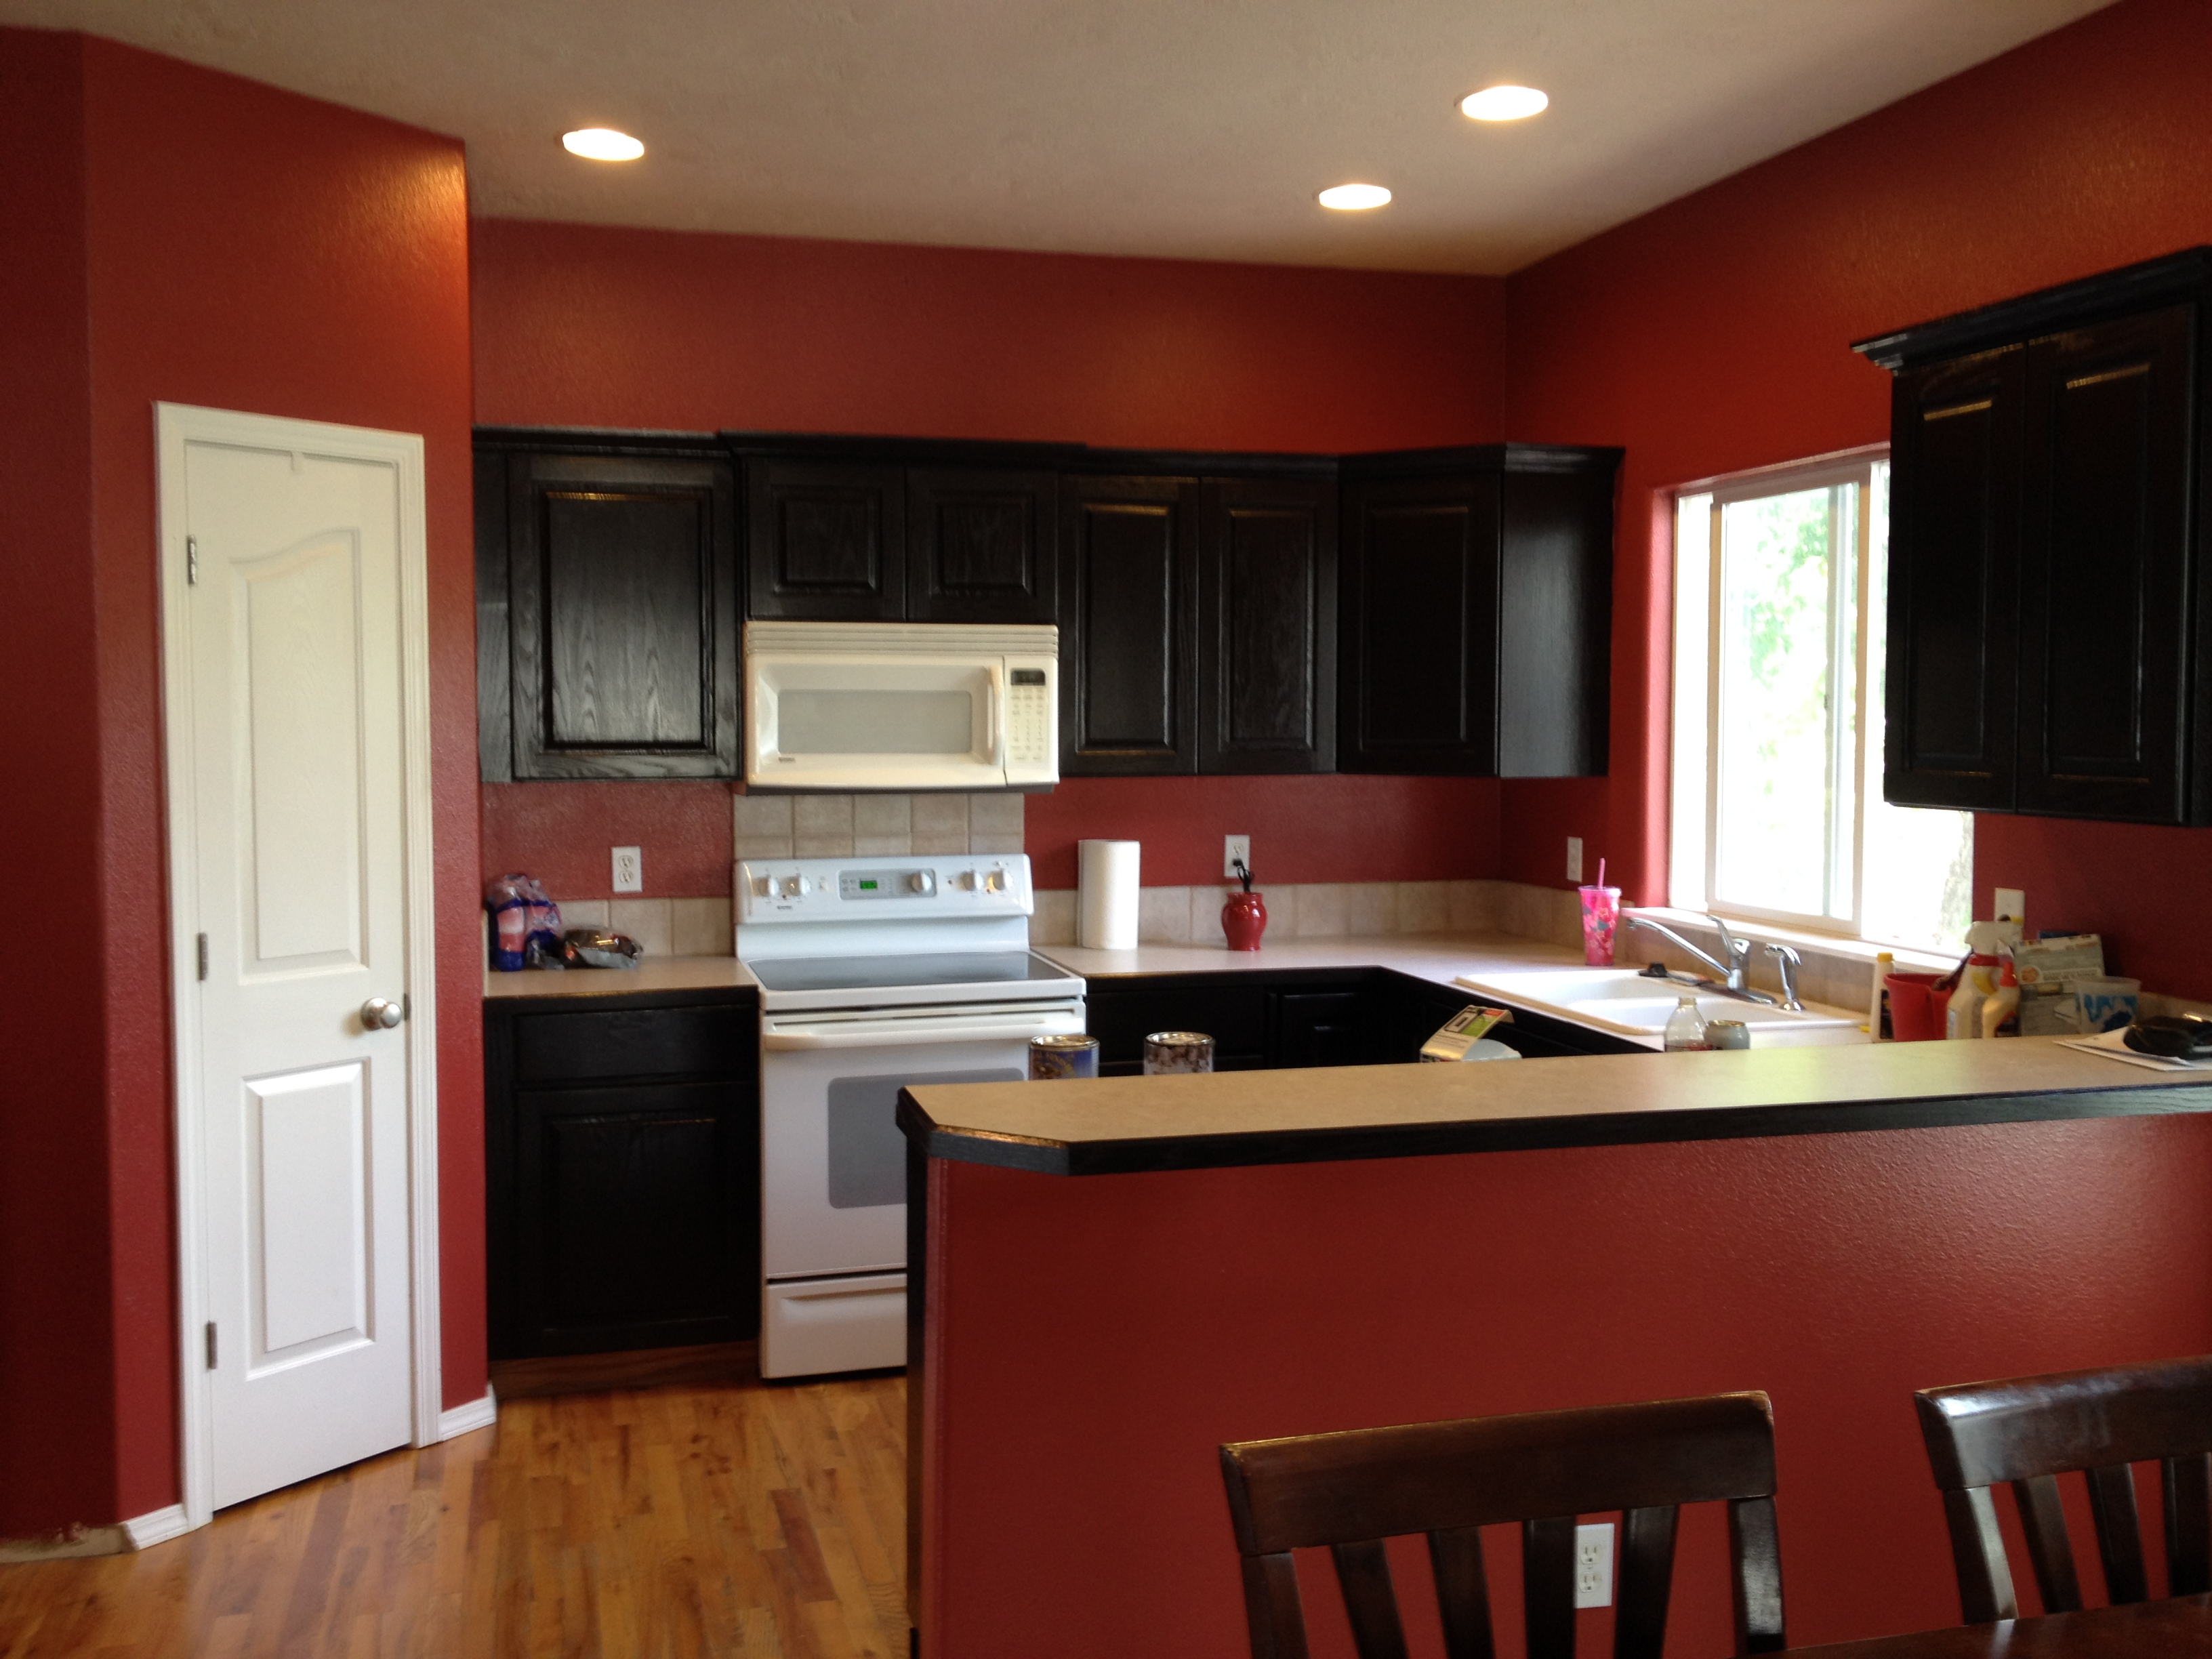 scd general finishes gel stain java kitchen cabinets lori sanders 1 20140628